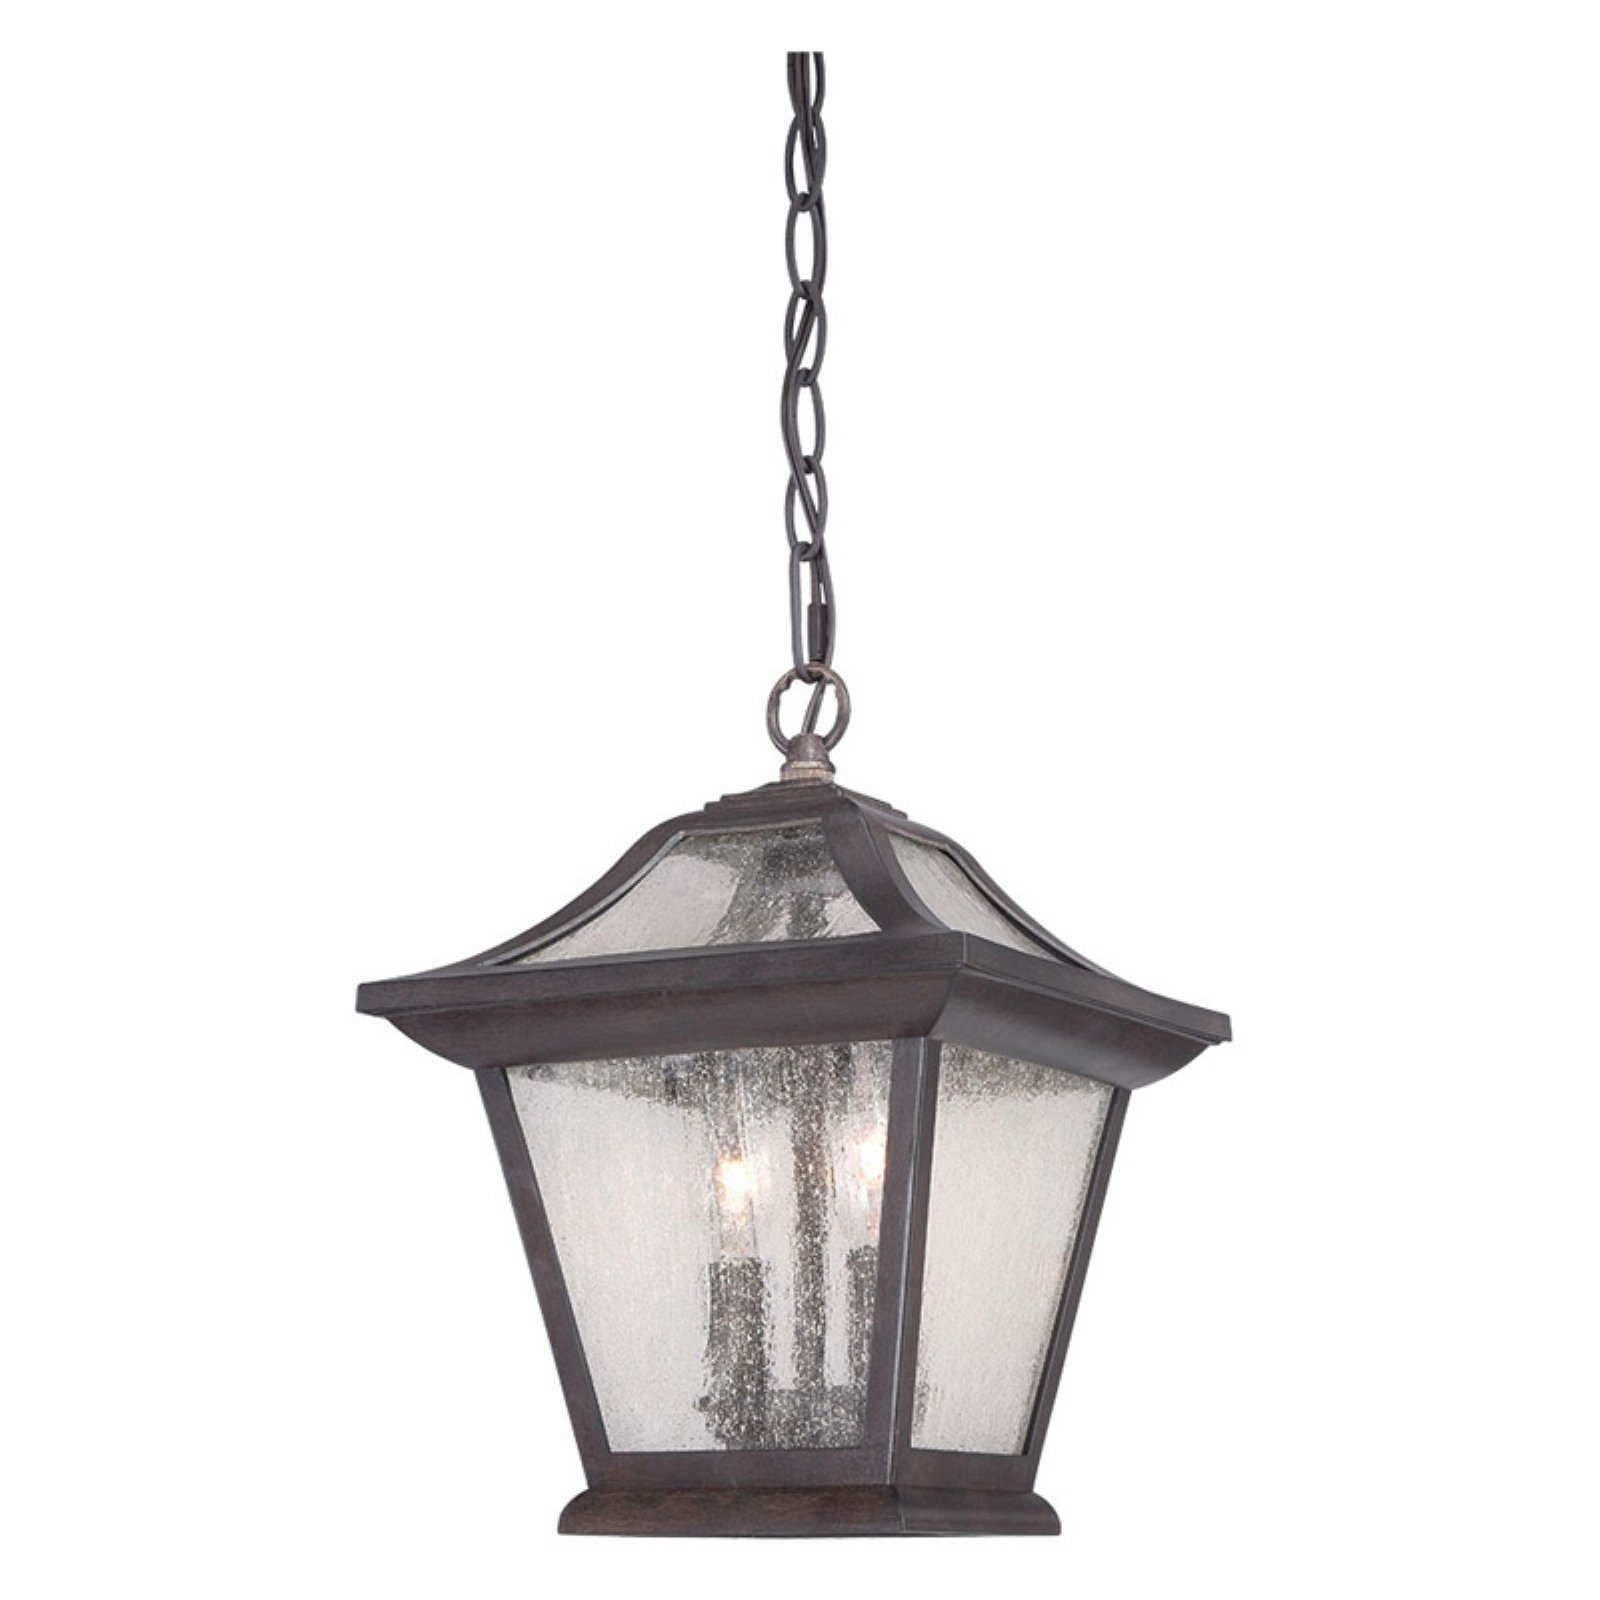 Image of Acclaim Lighting Aiken Outdoor Hanging Lantern Light Fixture